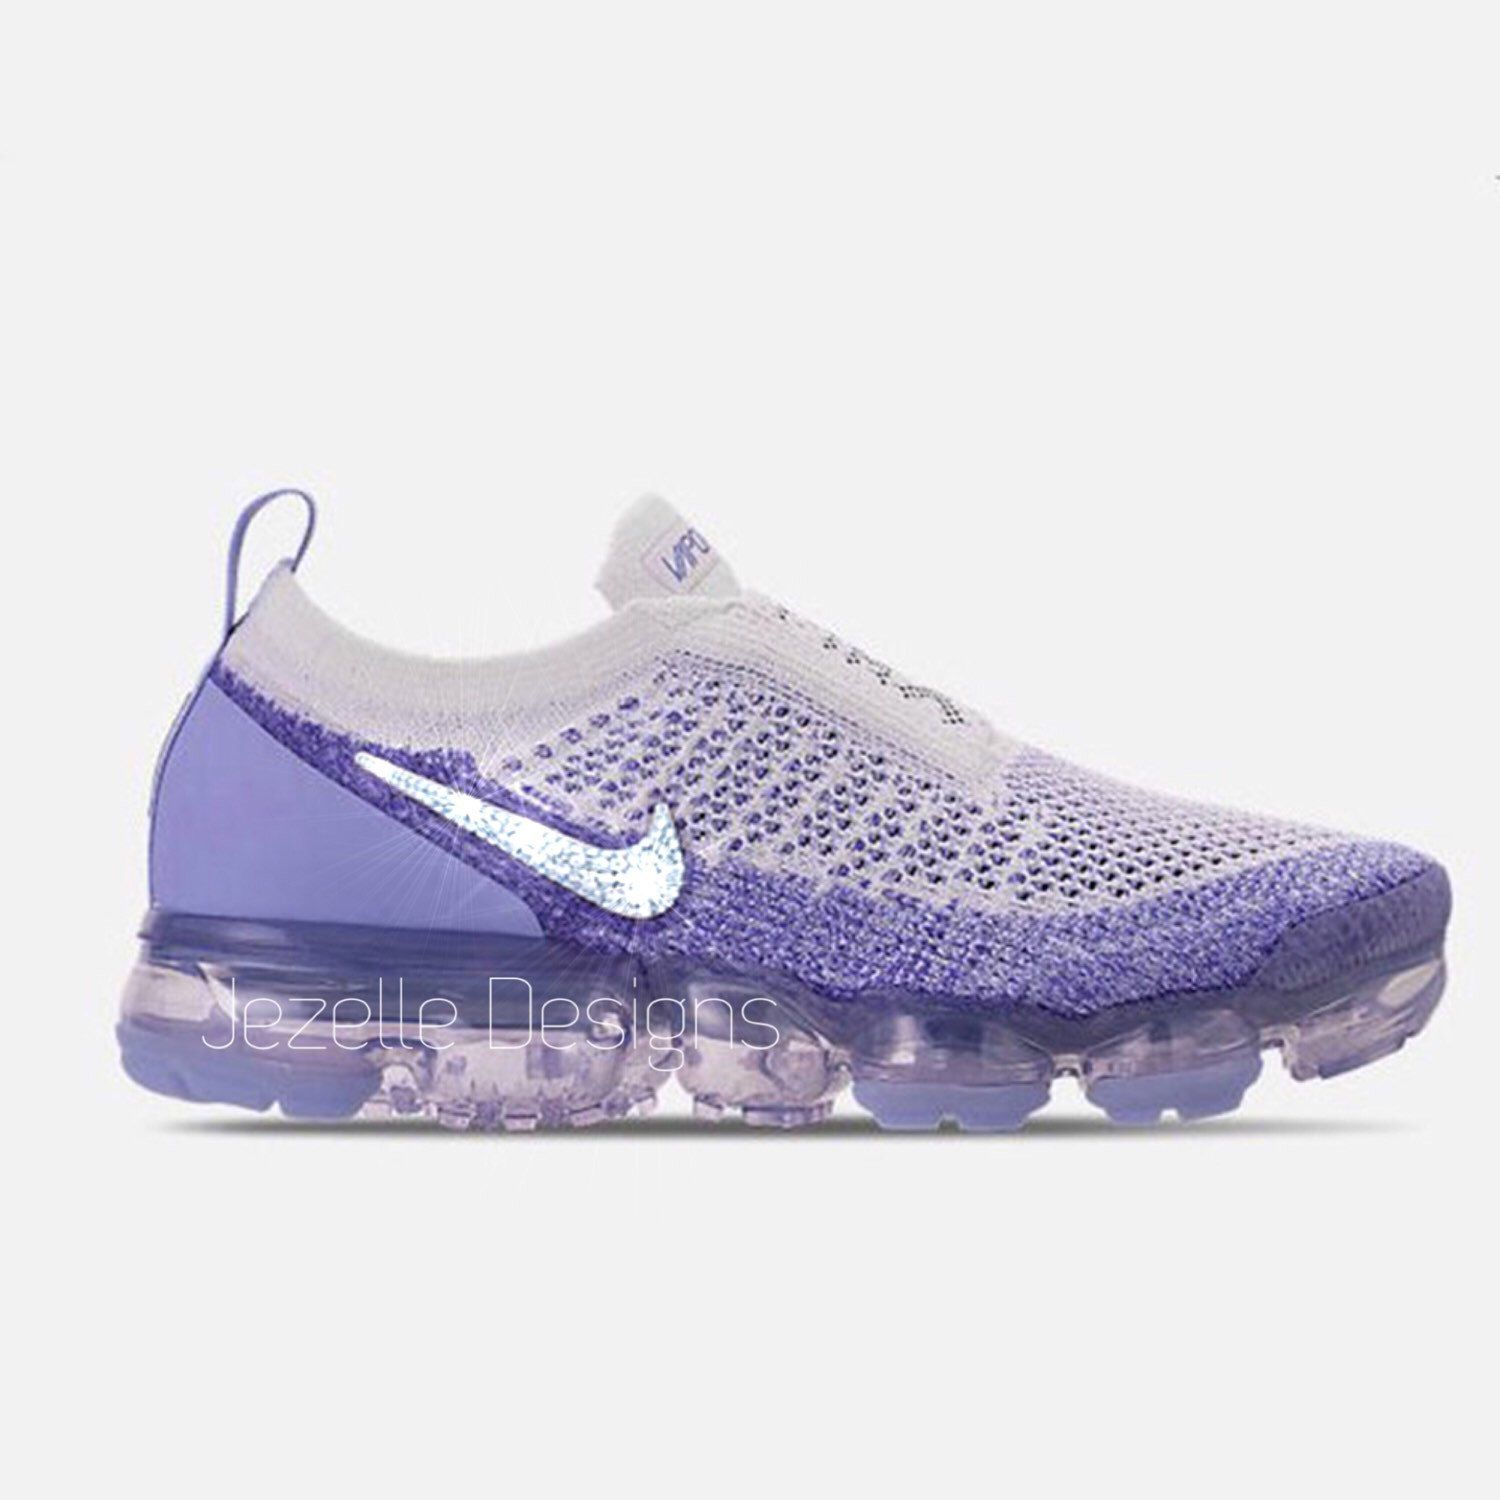 The shoes of your dreams have arrived! Custom Swarovski Crystal NIKE Air  VaporMax MOC2 by Jezelle Designs! Selling our fast!  fitspo  heatonmyfeet 871e140ed5